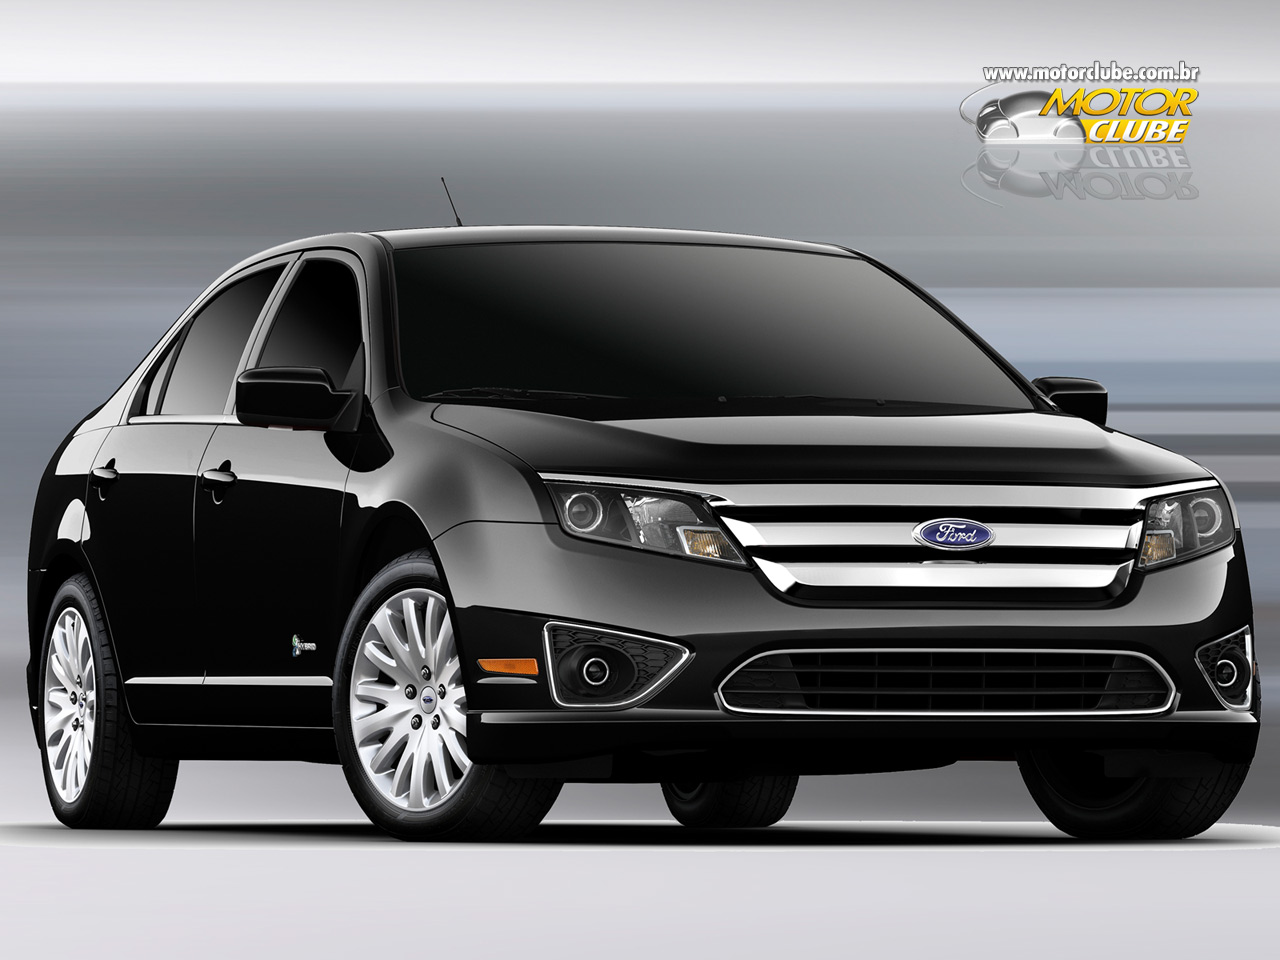 ford fusion related images start 50 weili automotive network. Black Bedroom Furniture Sets. Home Design Ideas